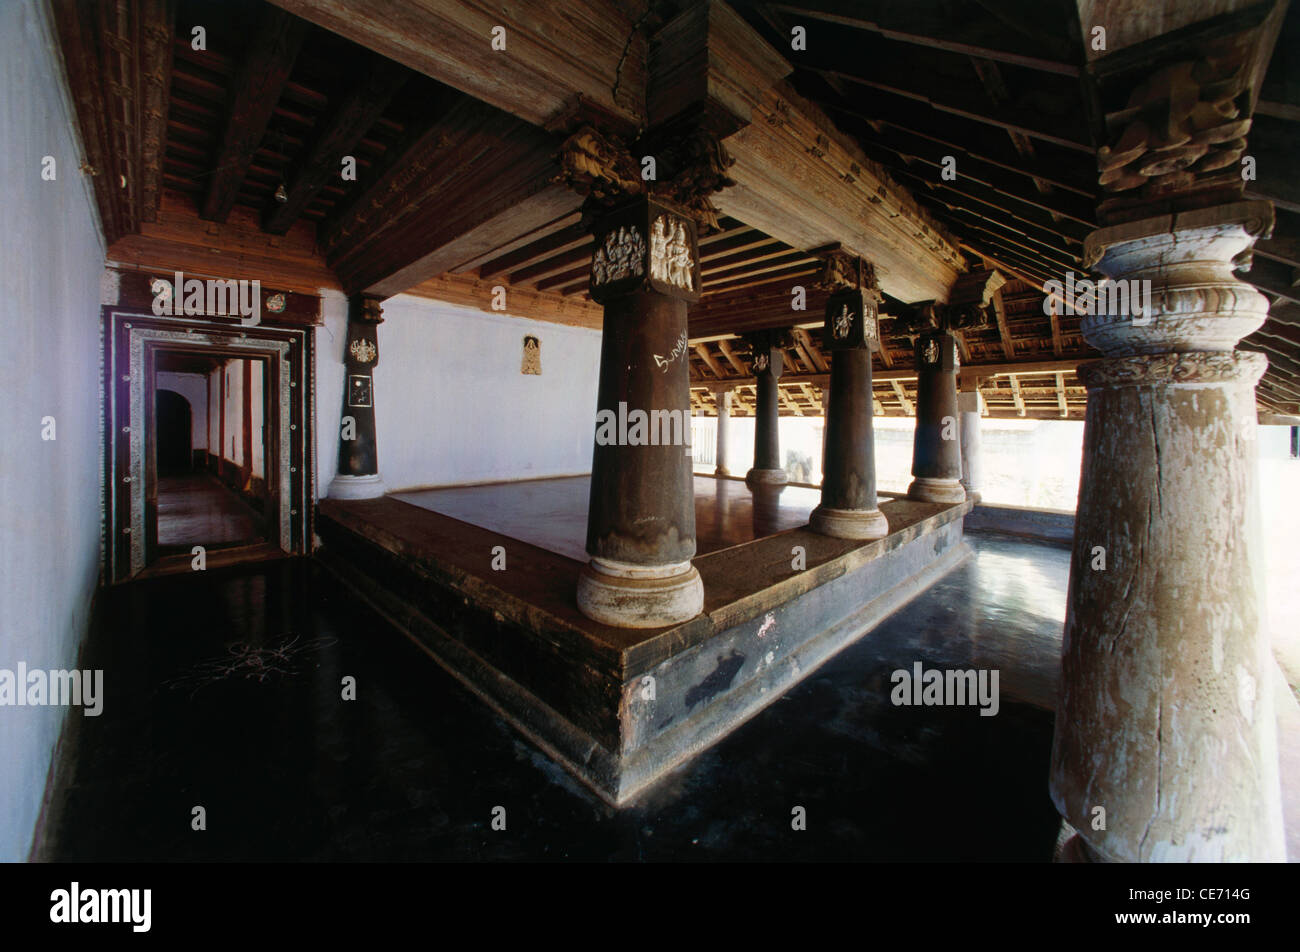 ... - AAD 82405 : old indian house interior pillars palghat kerala india